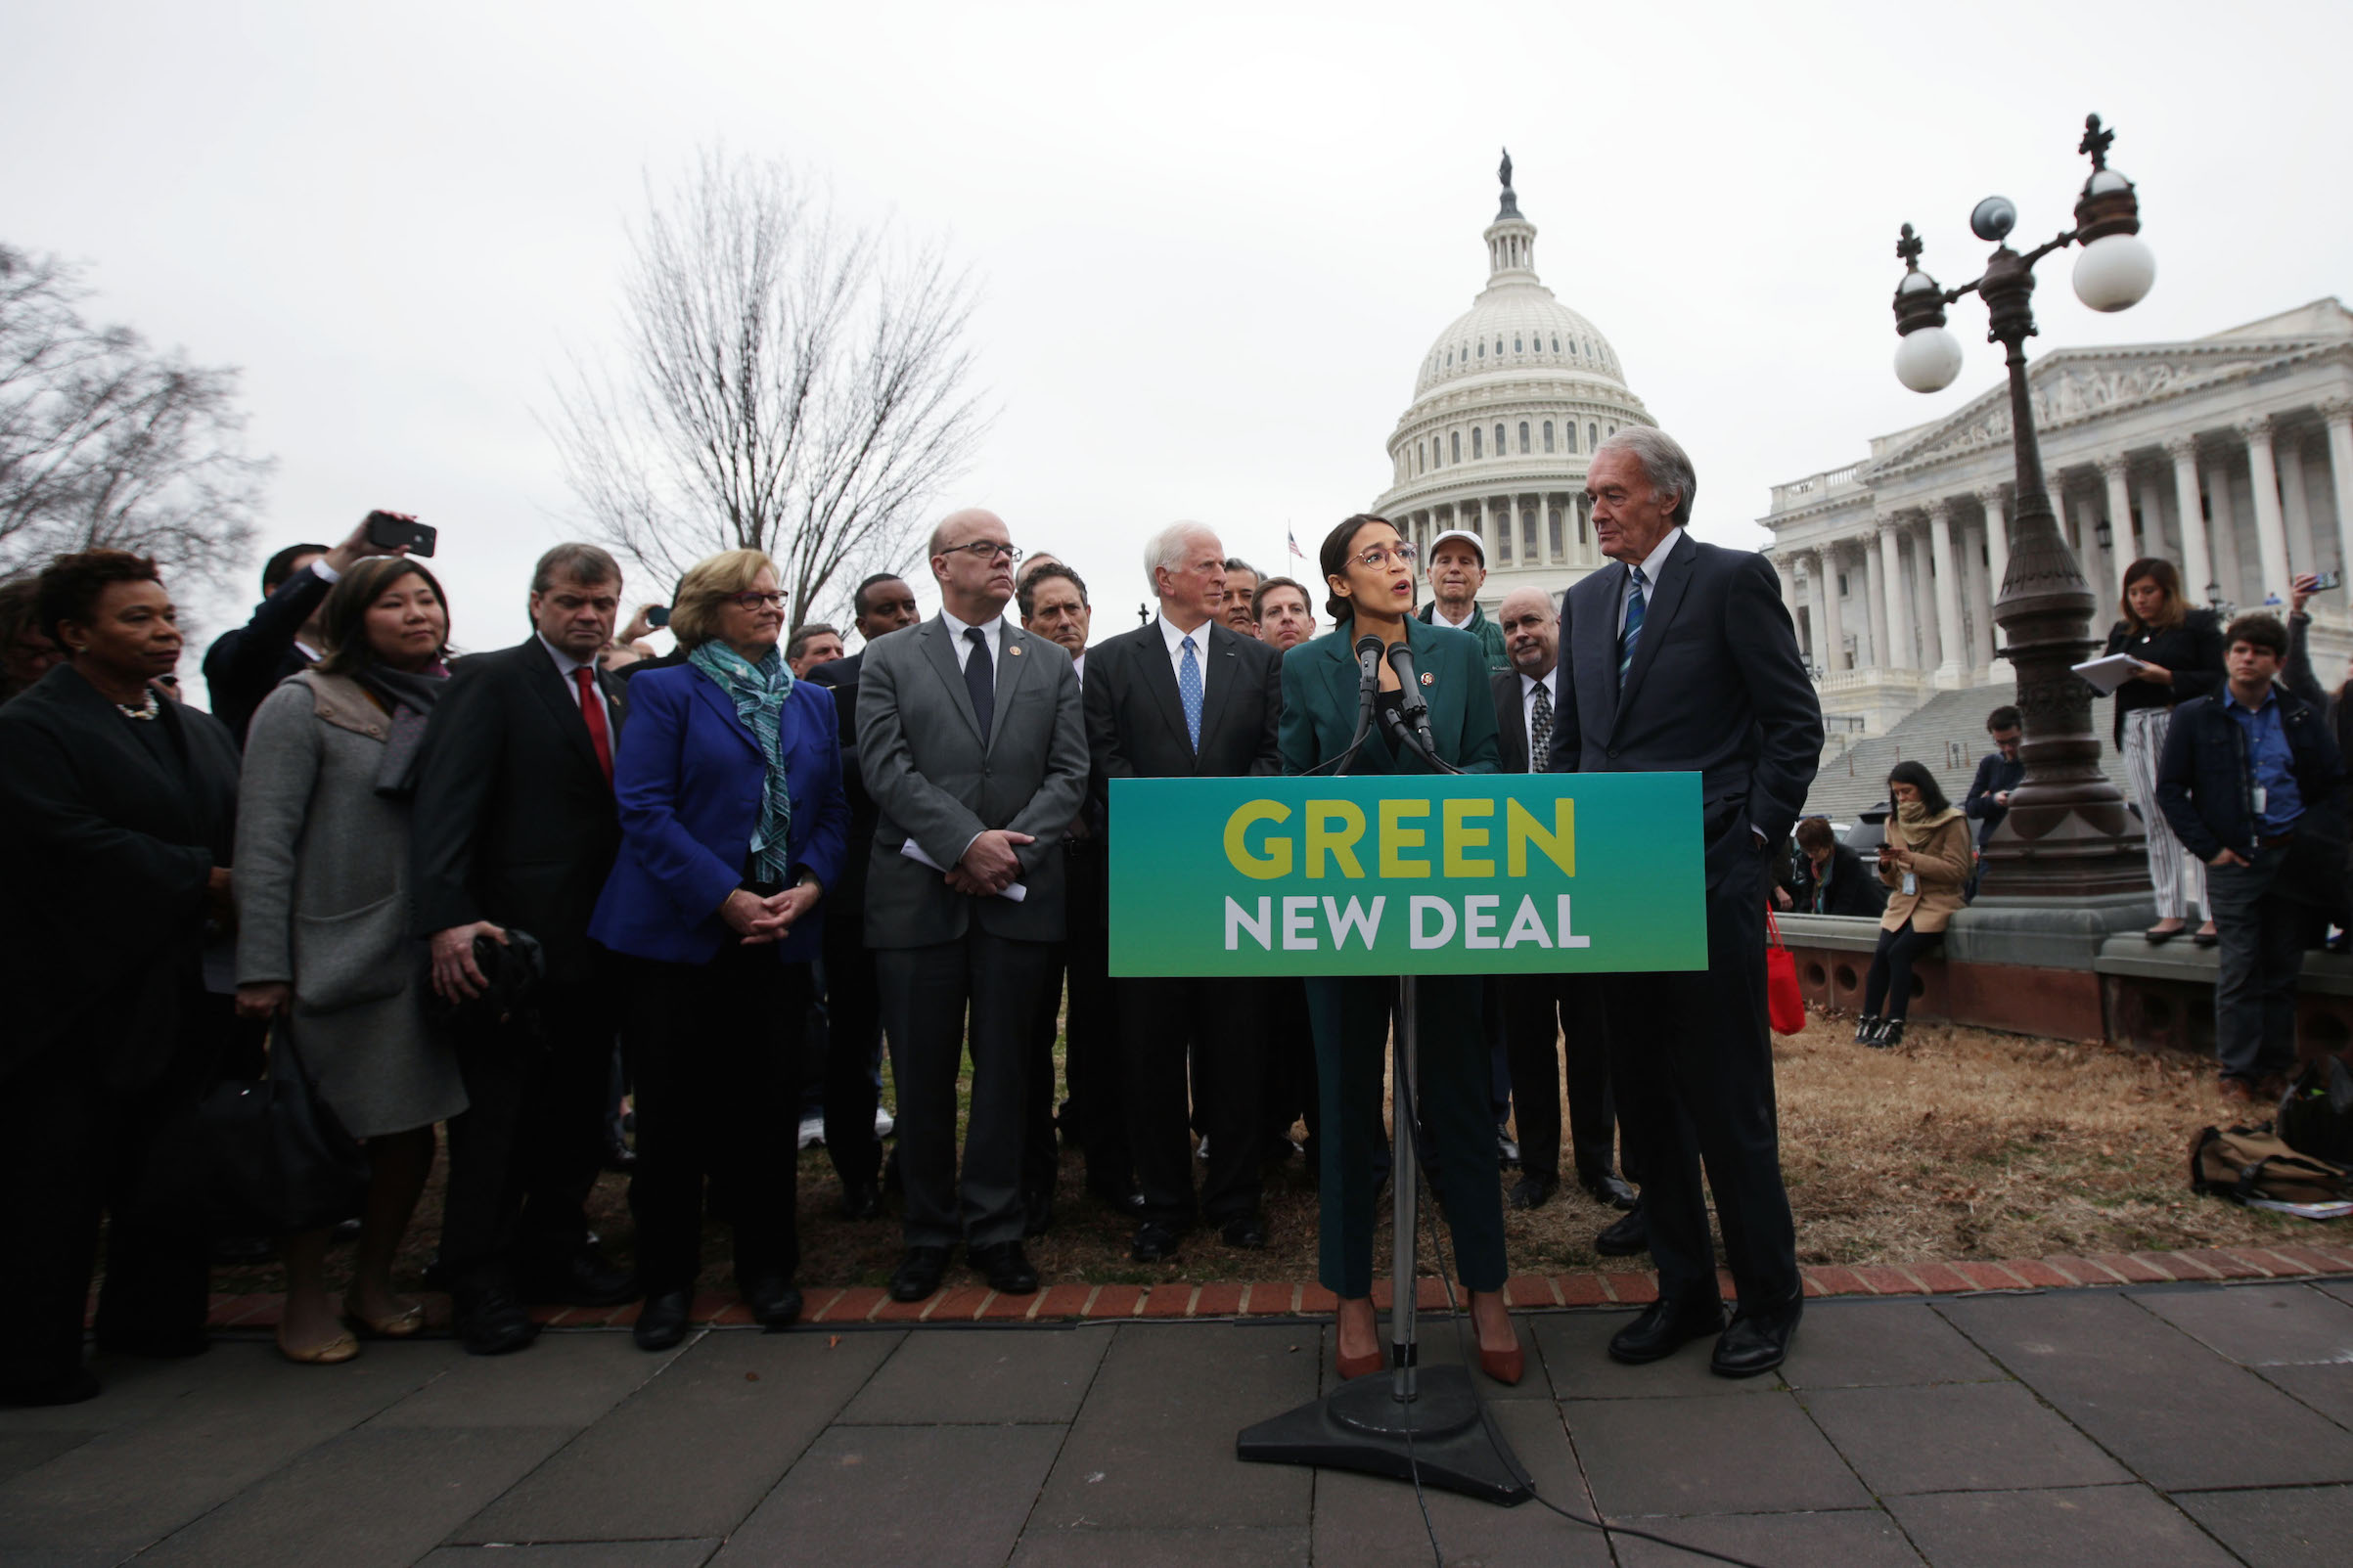 Rep. Alexandria Ocasio-Cortez speaks as Sen. Ed Markey and other Congressional Democrats listen during a news conference in front of the U.S. Capitol in Washington, on Feb. 7, 2019. Sen. Markey and Rep. Ocasio-Cortez held a news conference to unveil their Green New Deal resolution.